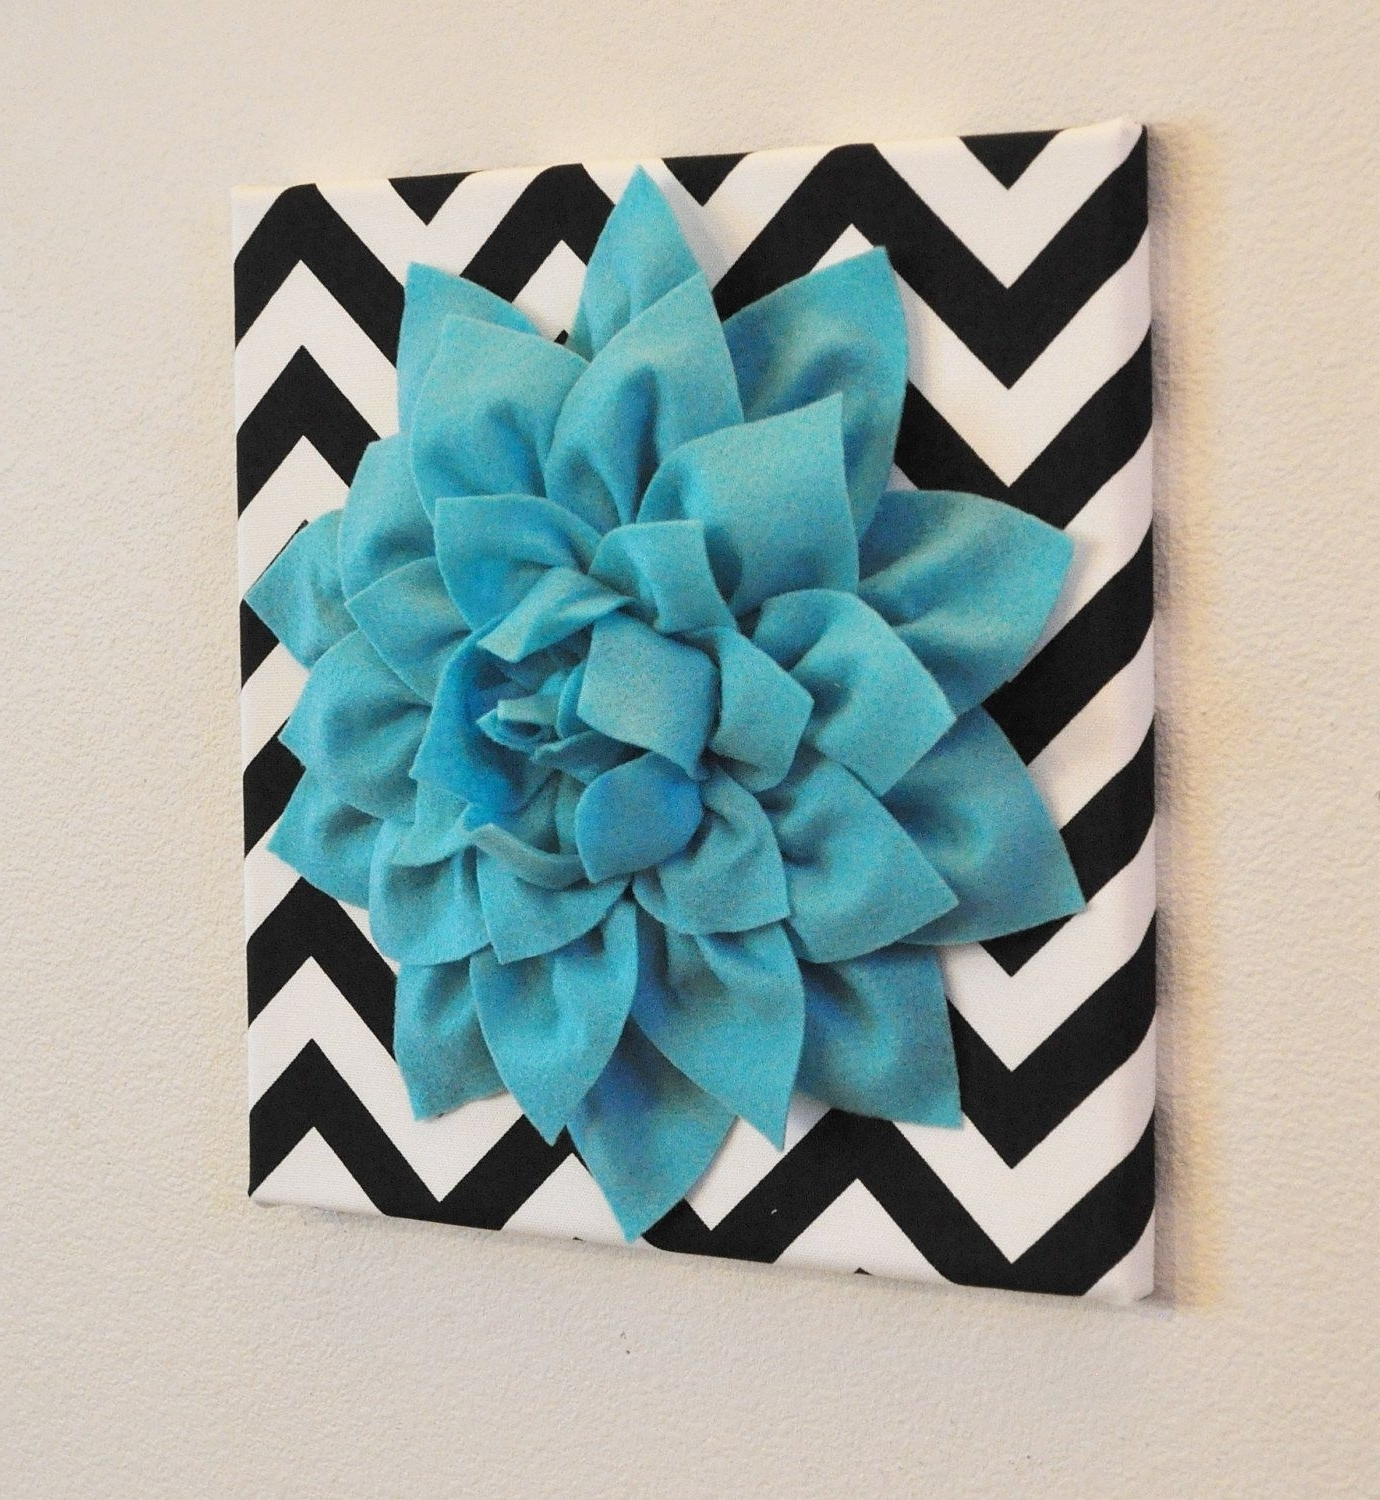 Recent Aqua+Wall+Flower+Turquoise+Dahlia+On+Black+And+White+By+Bedbuggs Pertaining To Turquoise And Black Wall Art (View 6 of 15)